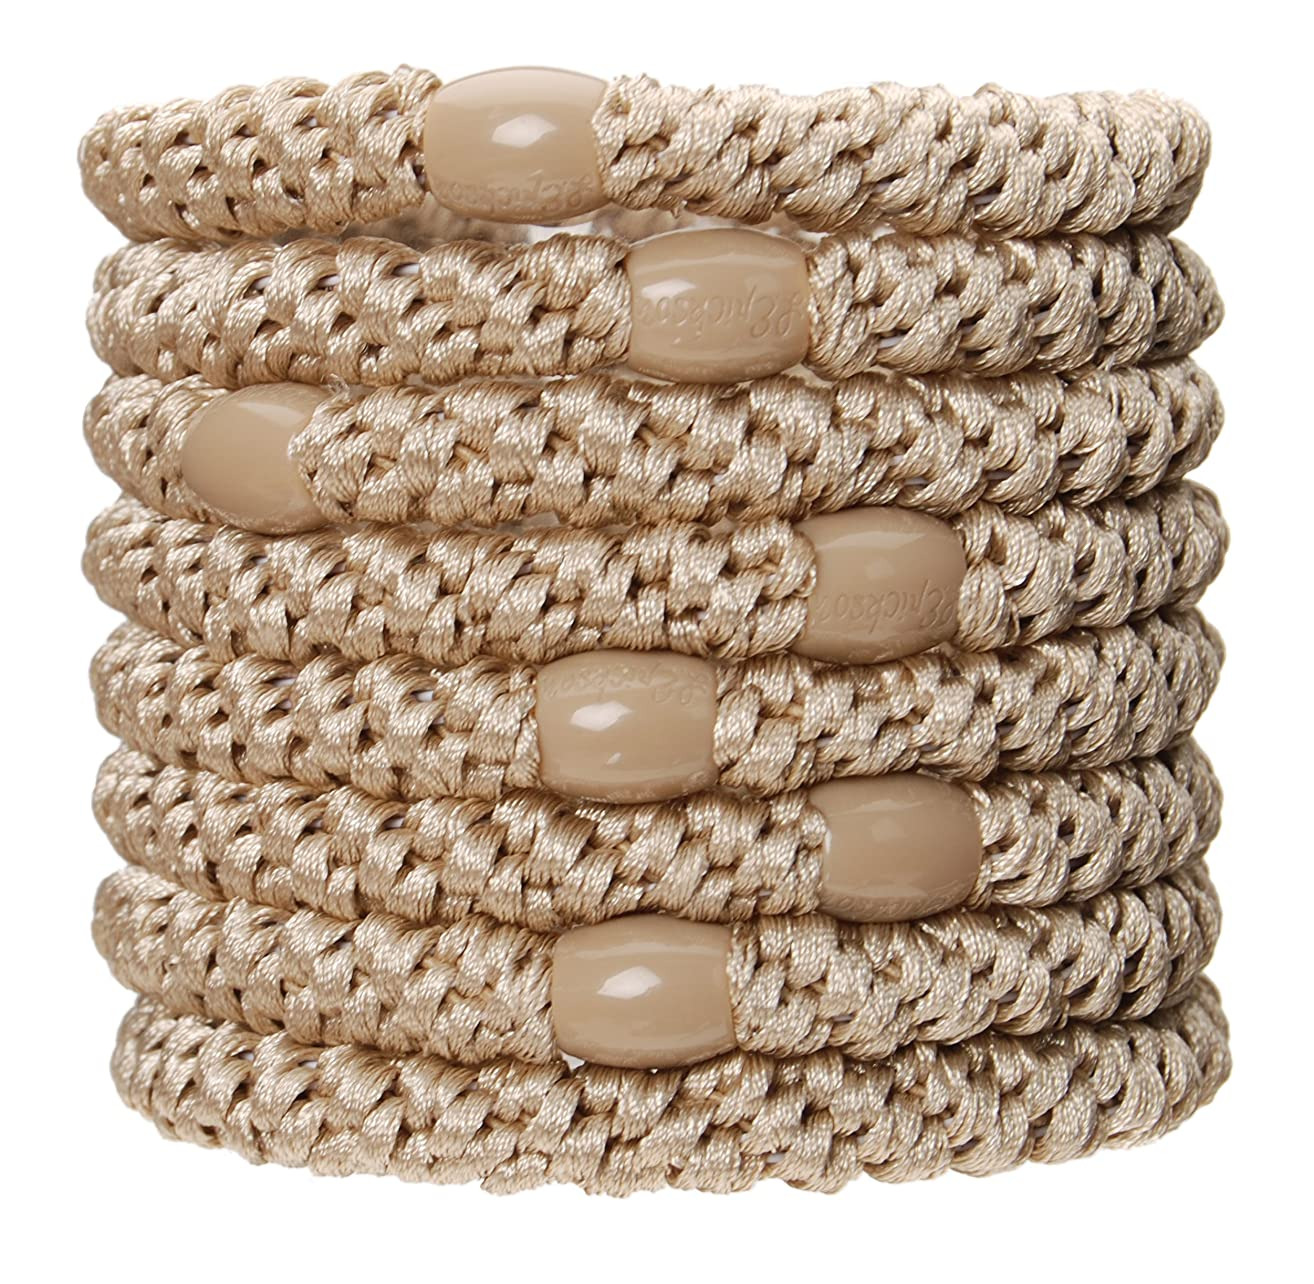 L. Erickson Grab & Go Ponytail Holders, Beige, Set of Eight - Exceptionally Secure with Gentle Hold